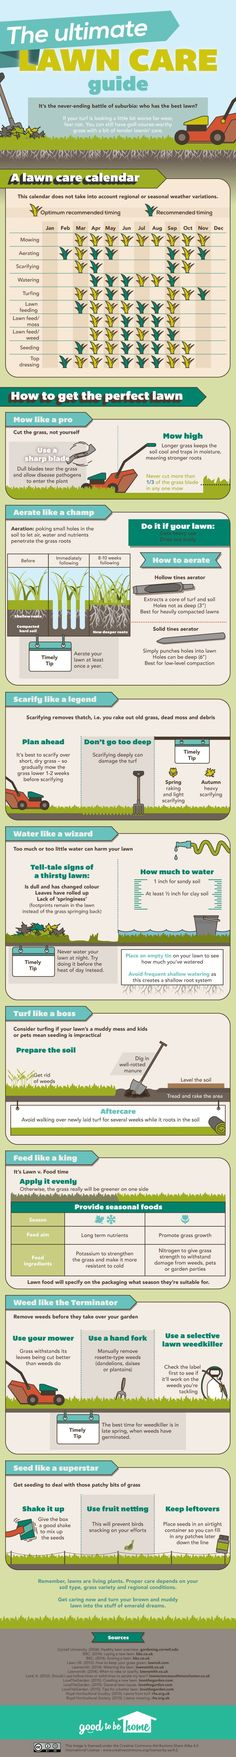 The ultimate lawn care guide. #infographic #design (View more at www.aldenchong.com)